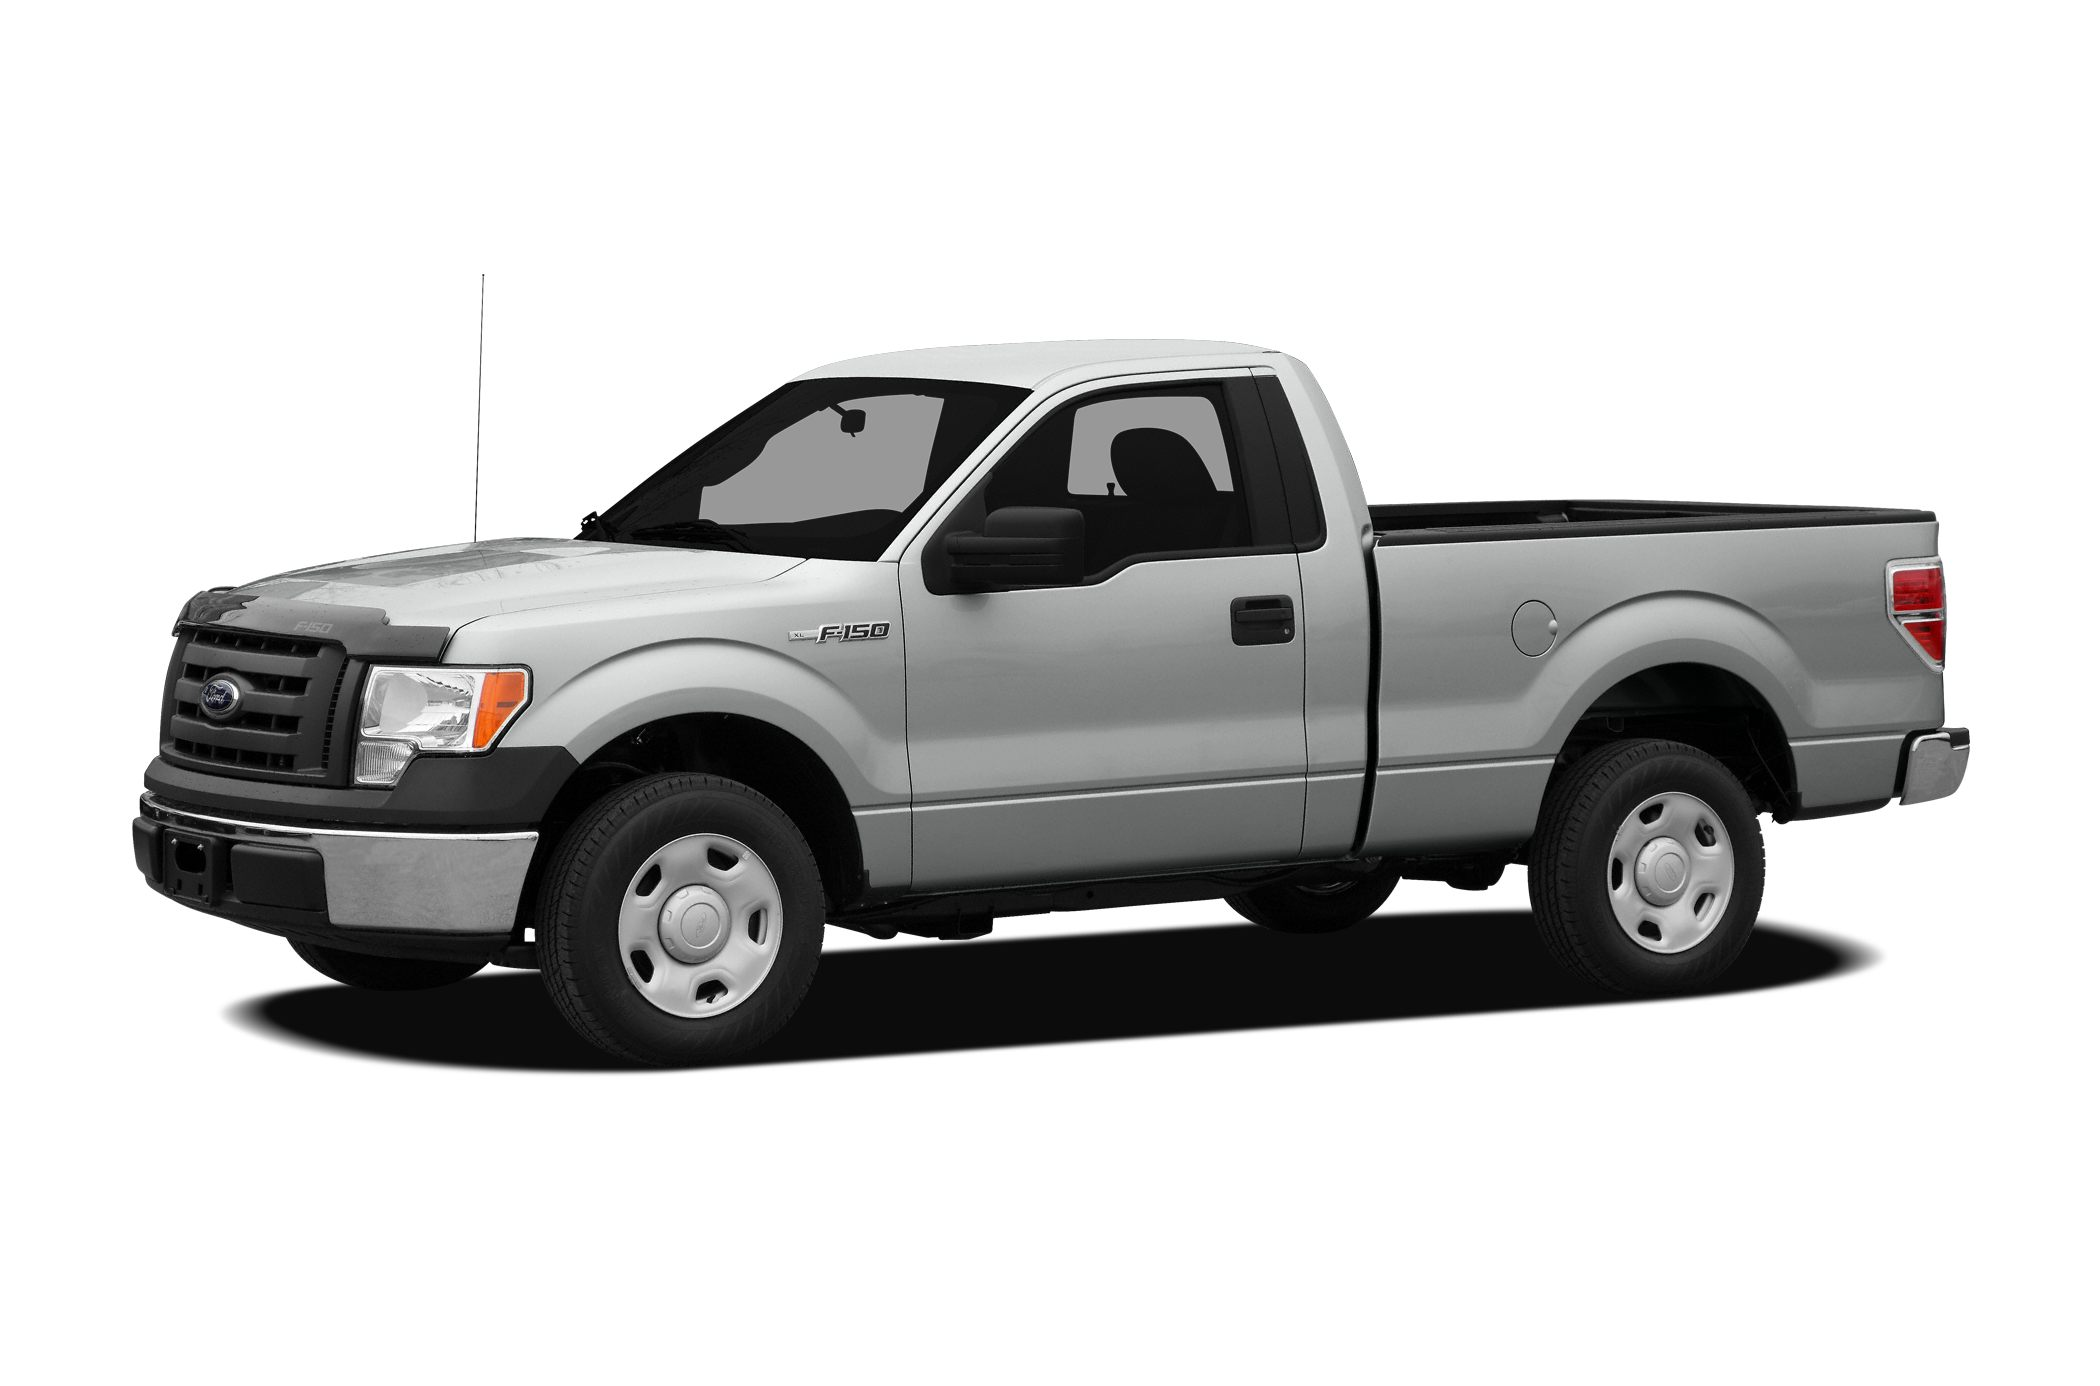 2009 Ford F150 XLT Crew Cab Pickup for sale in Brownsville for $18,071 with 182,548 miles